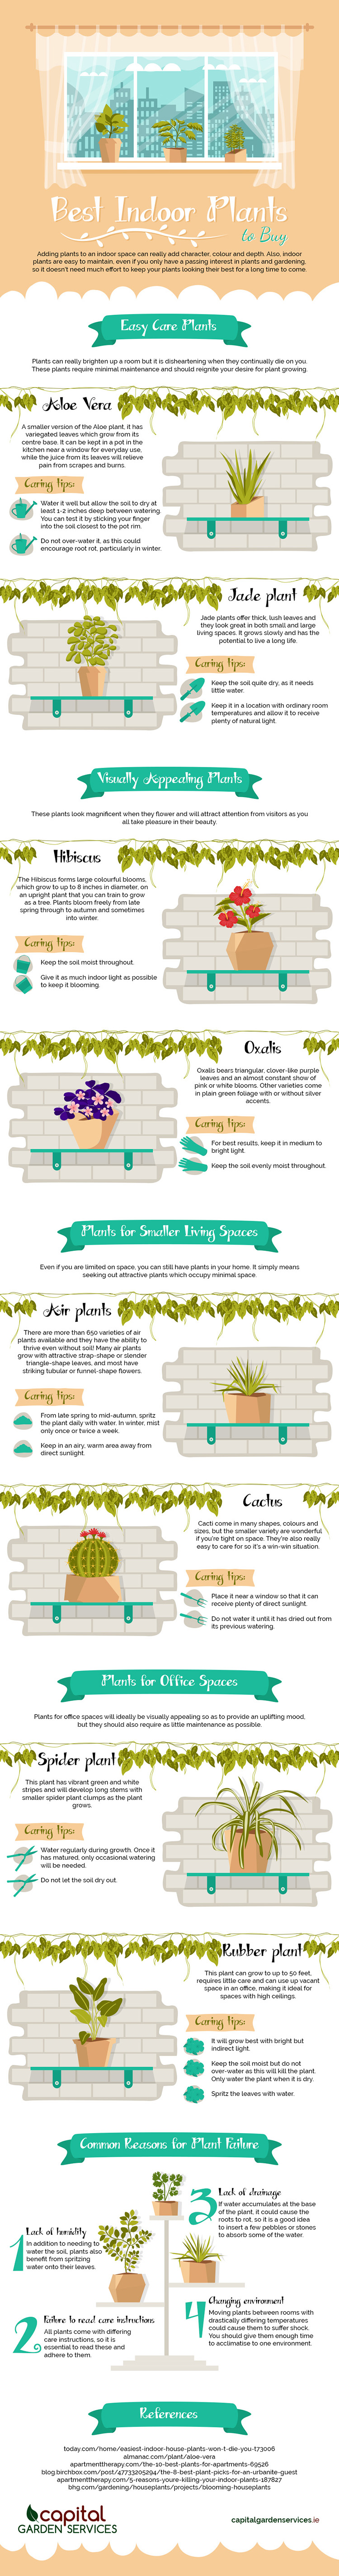 Best-Indoor-Plants-Infographic